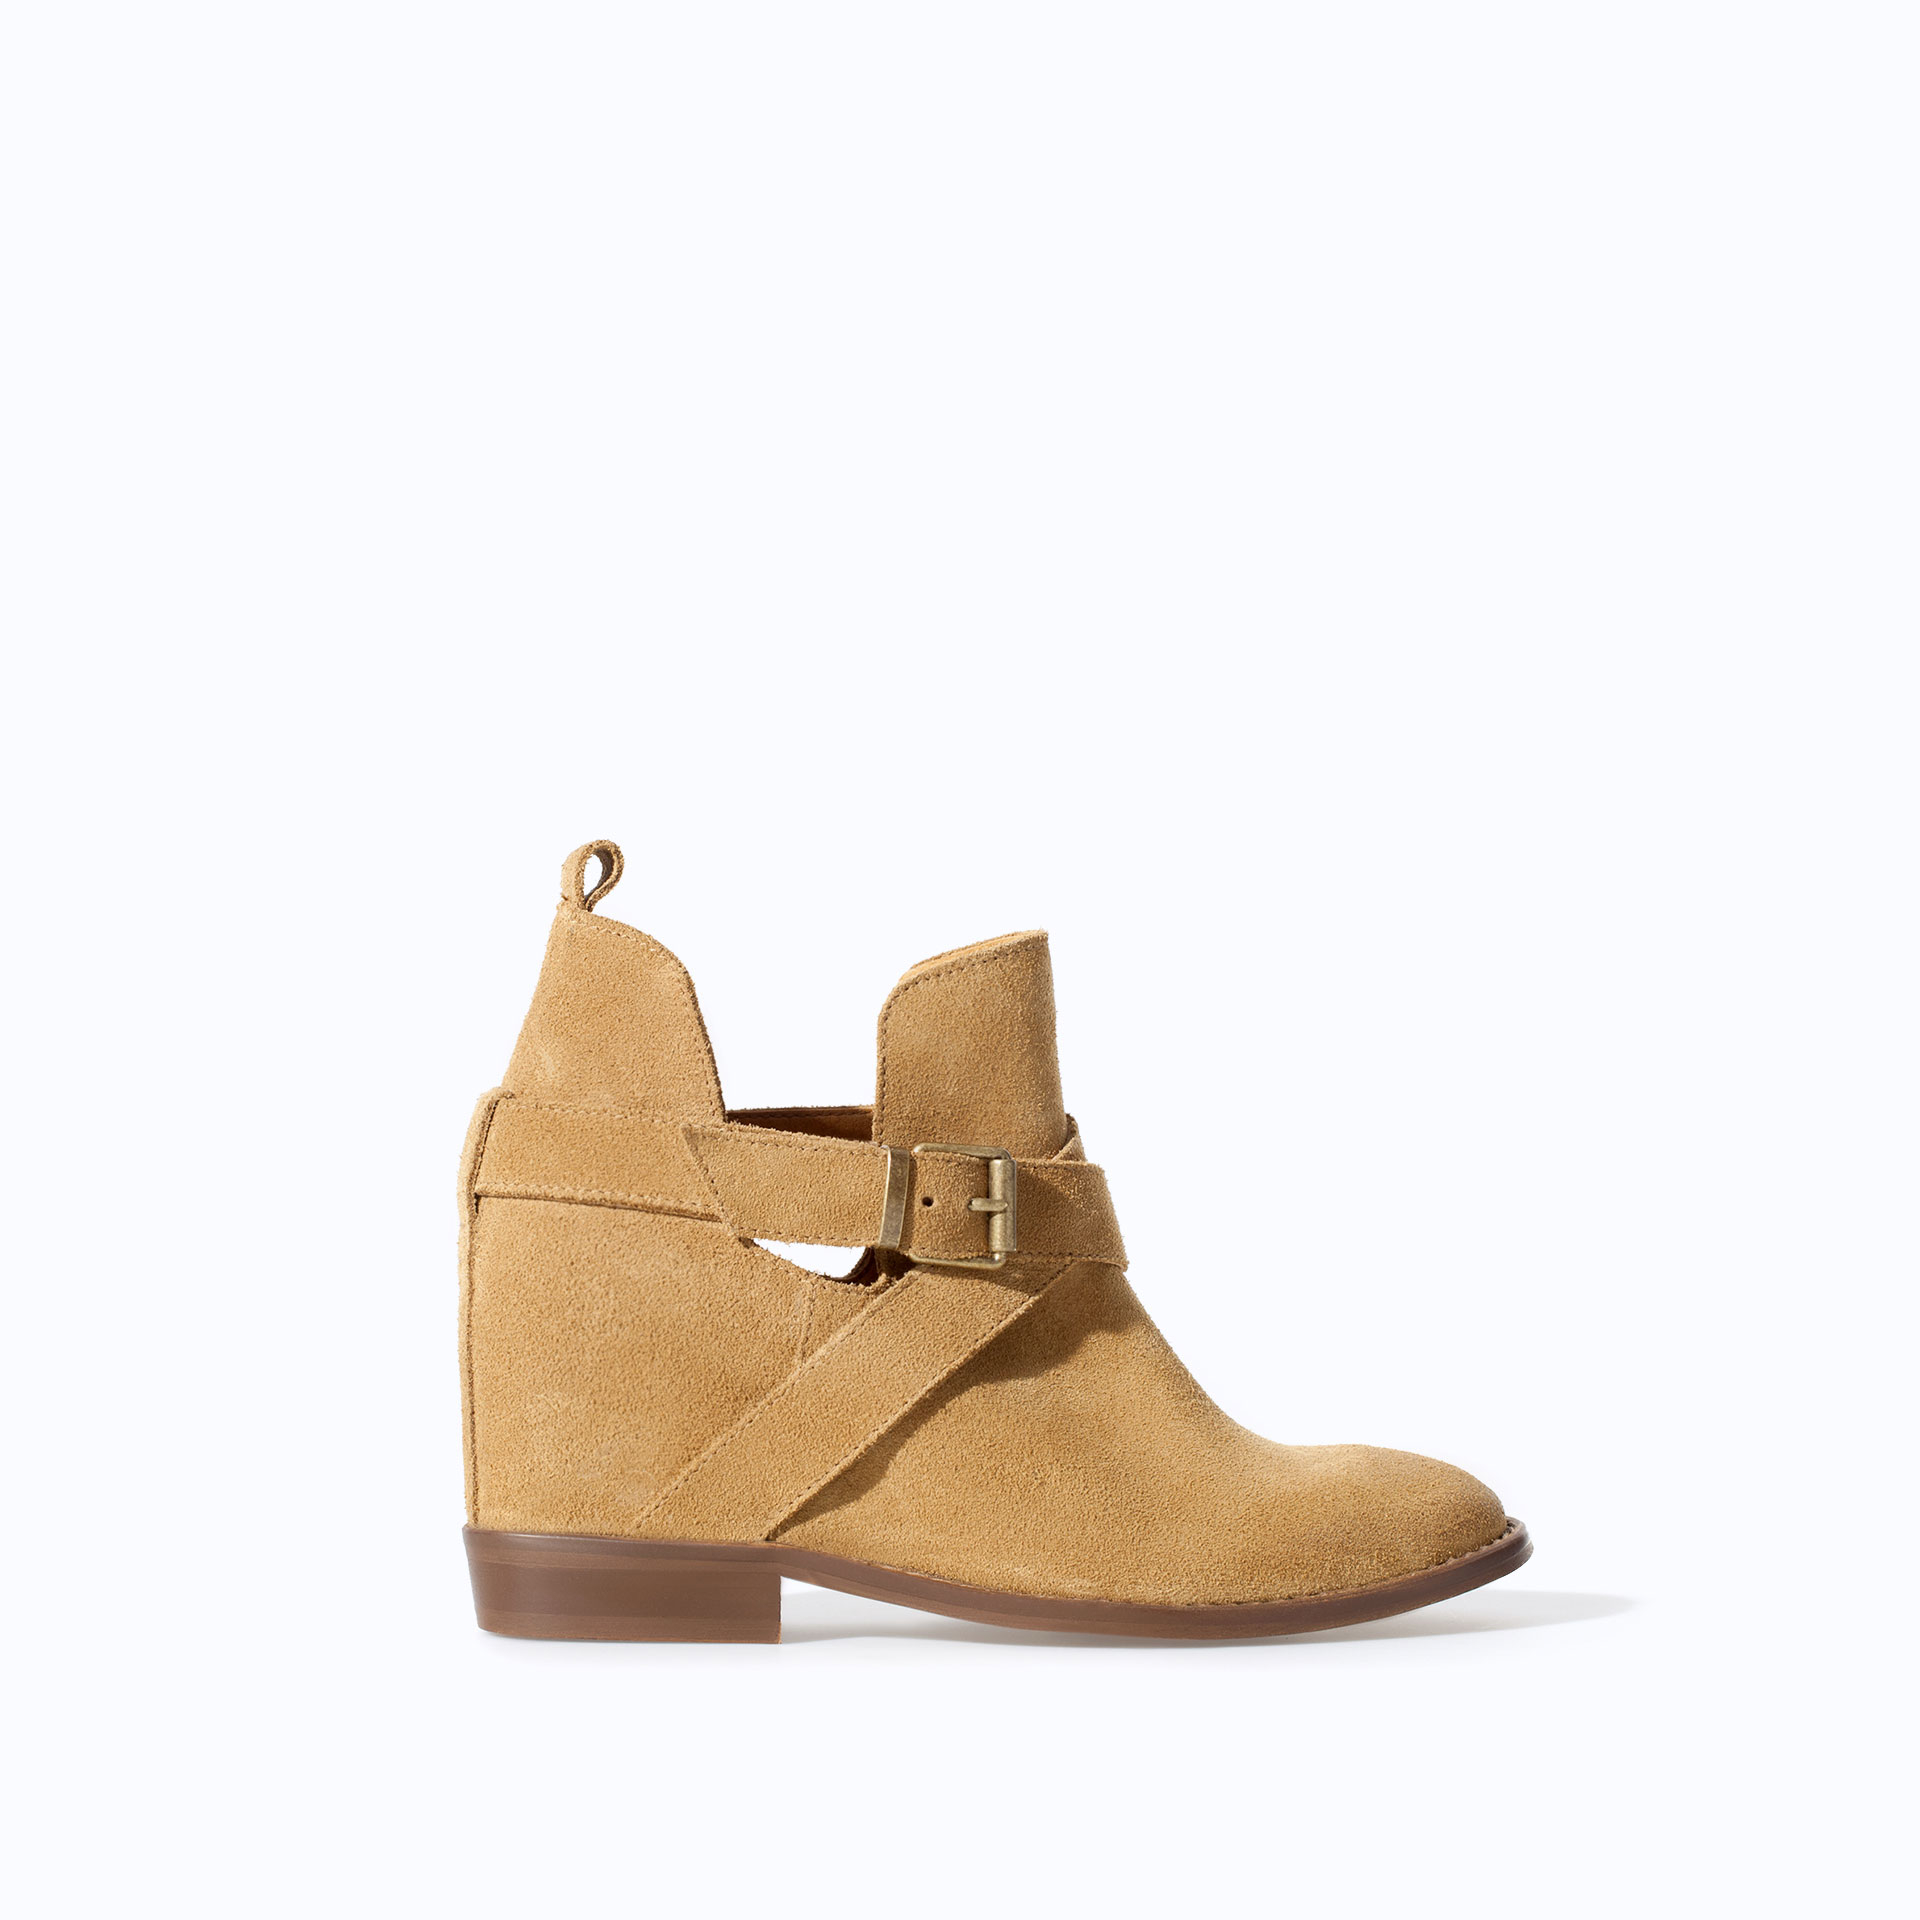 zara open work leather wedge heel ankle boot in brown